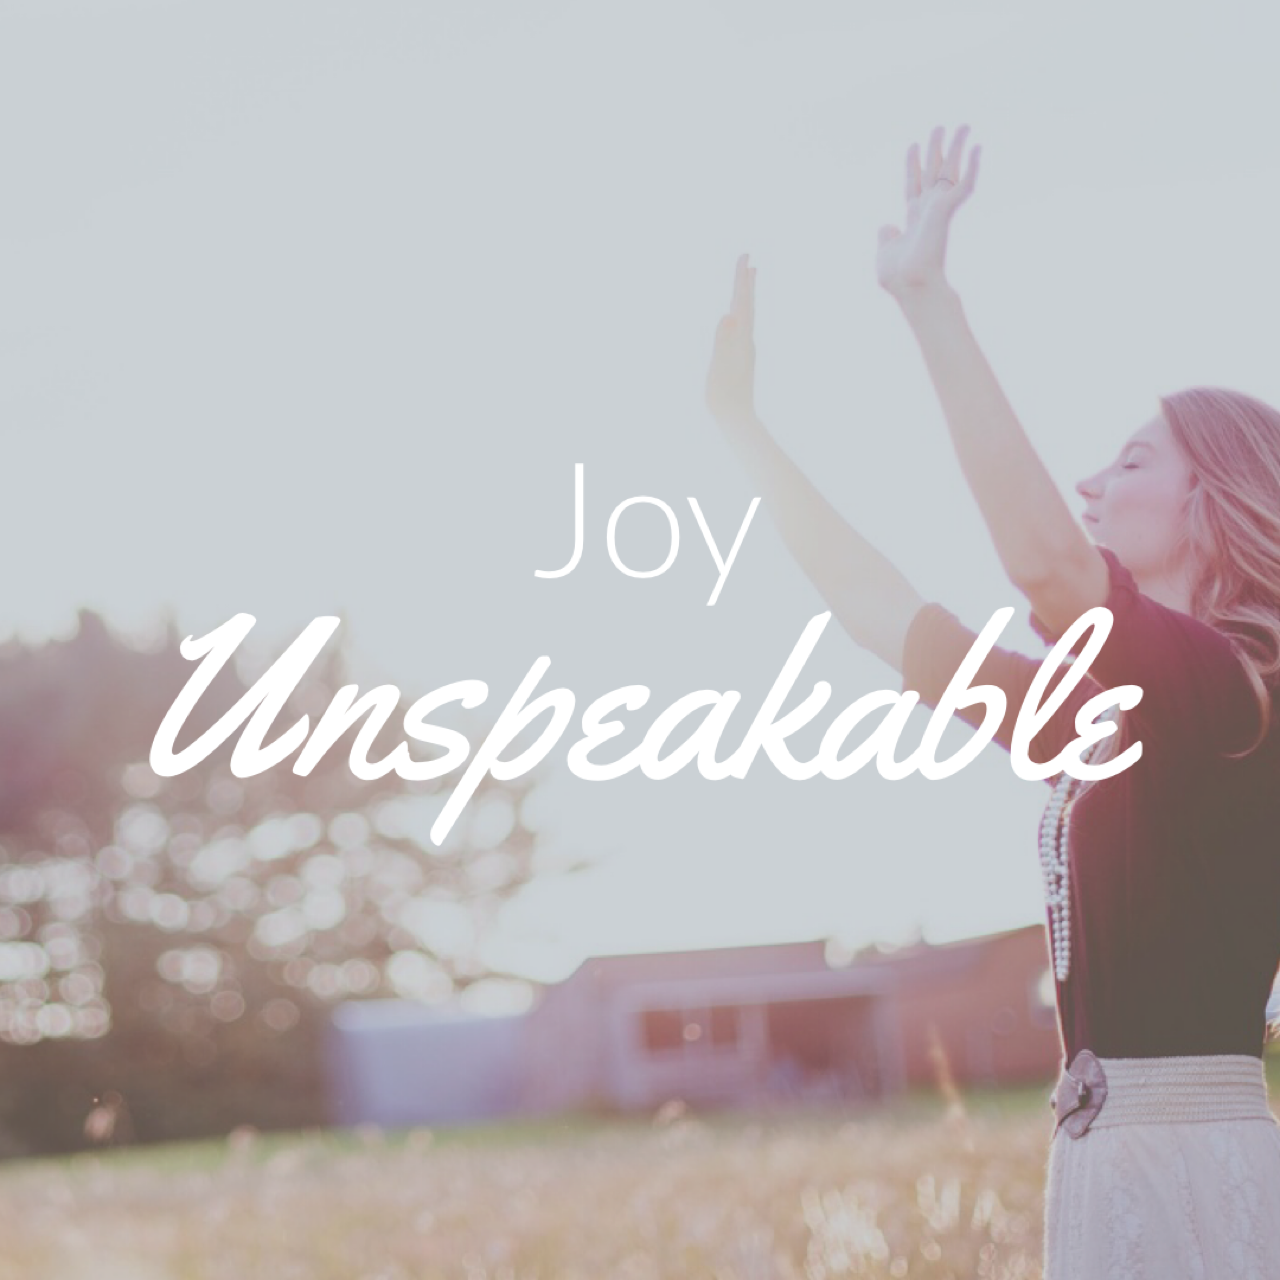 7-21_joy-usnpeakable-title-card.png